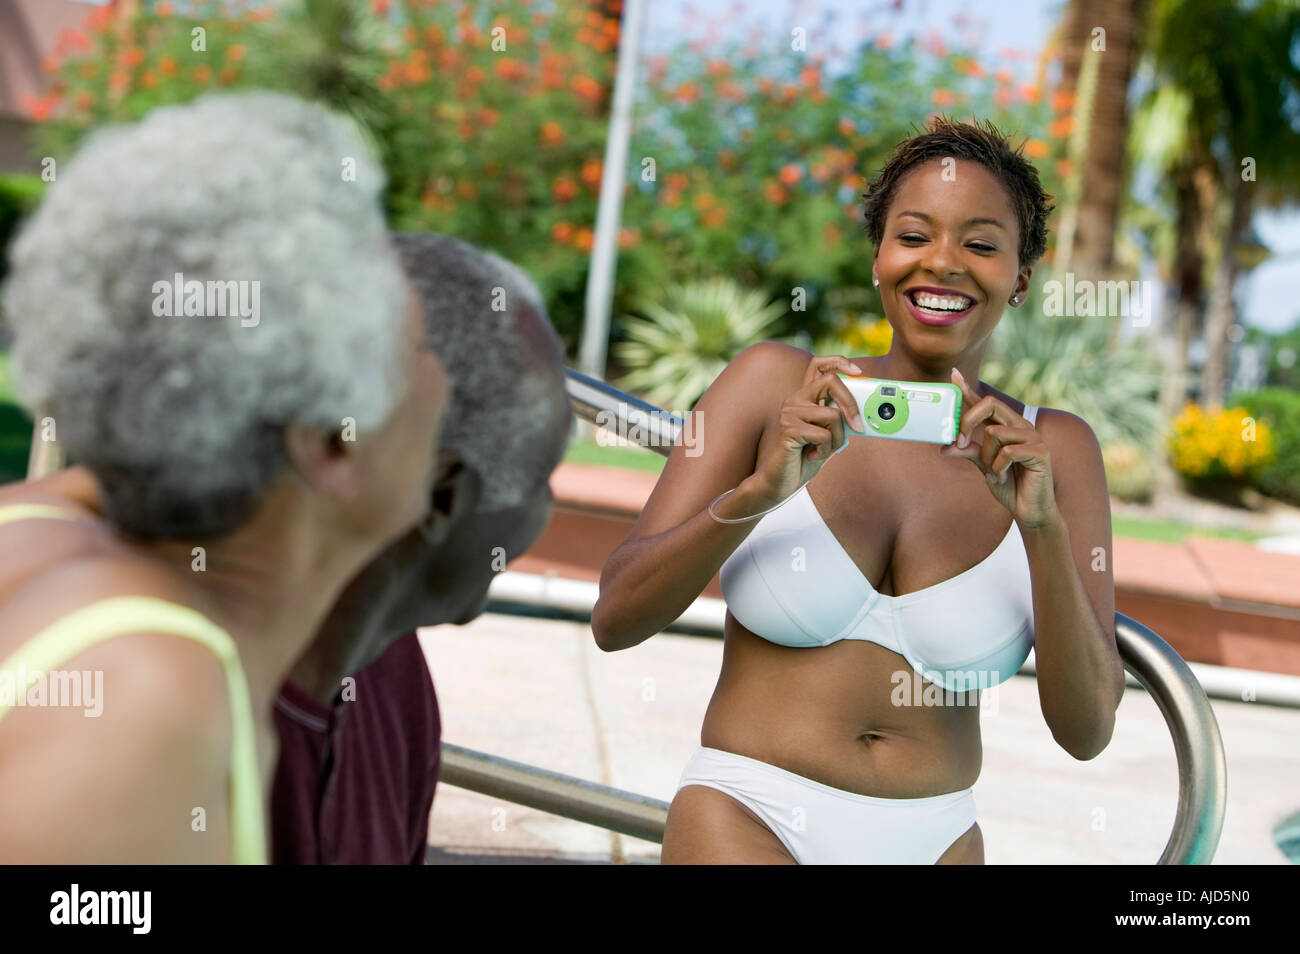 5a6b2dfdf913d Woman wearing bikini photographing senior couple outdoors. - Stock Image